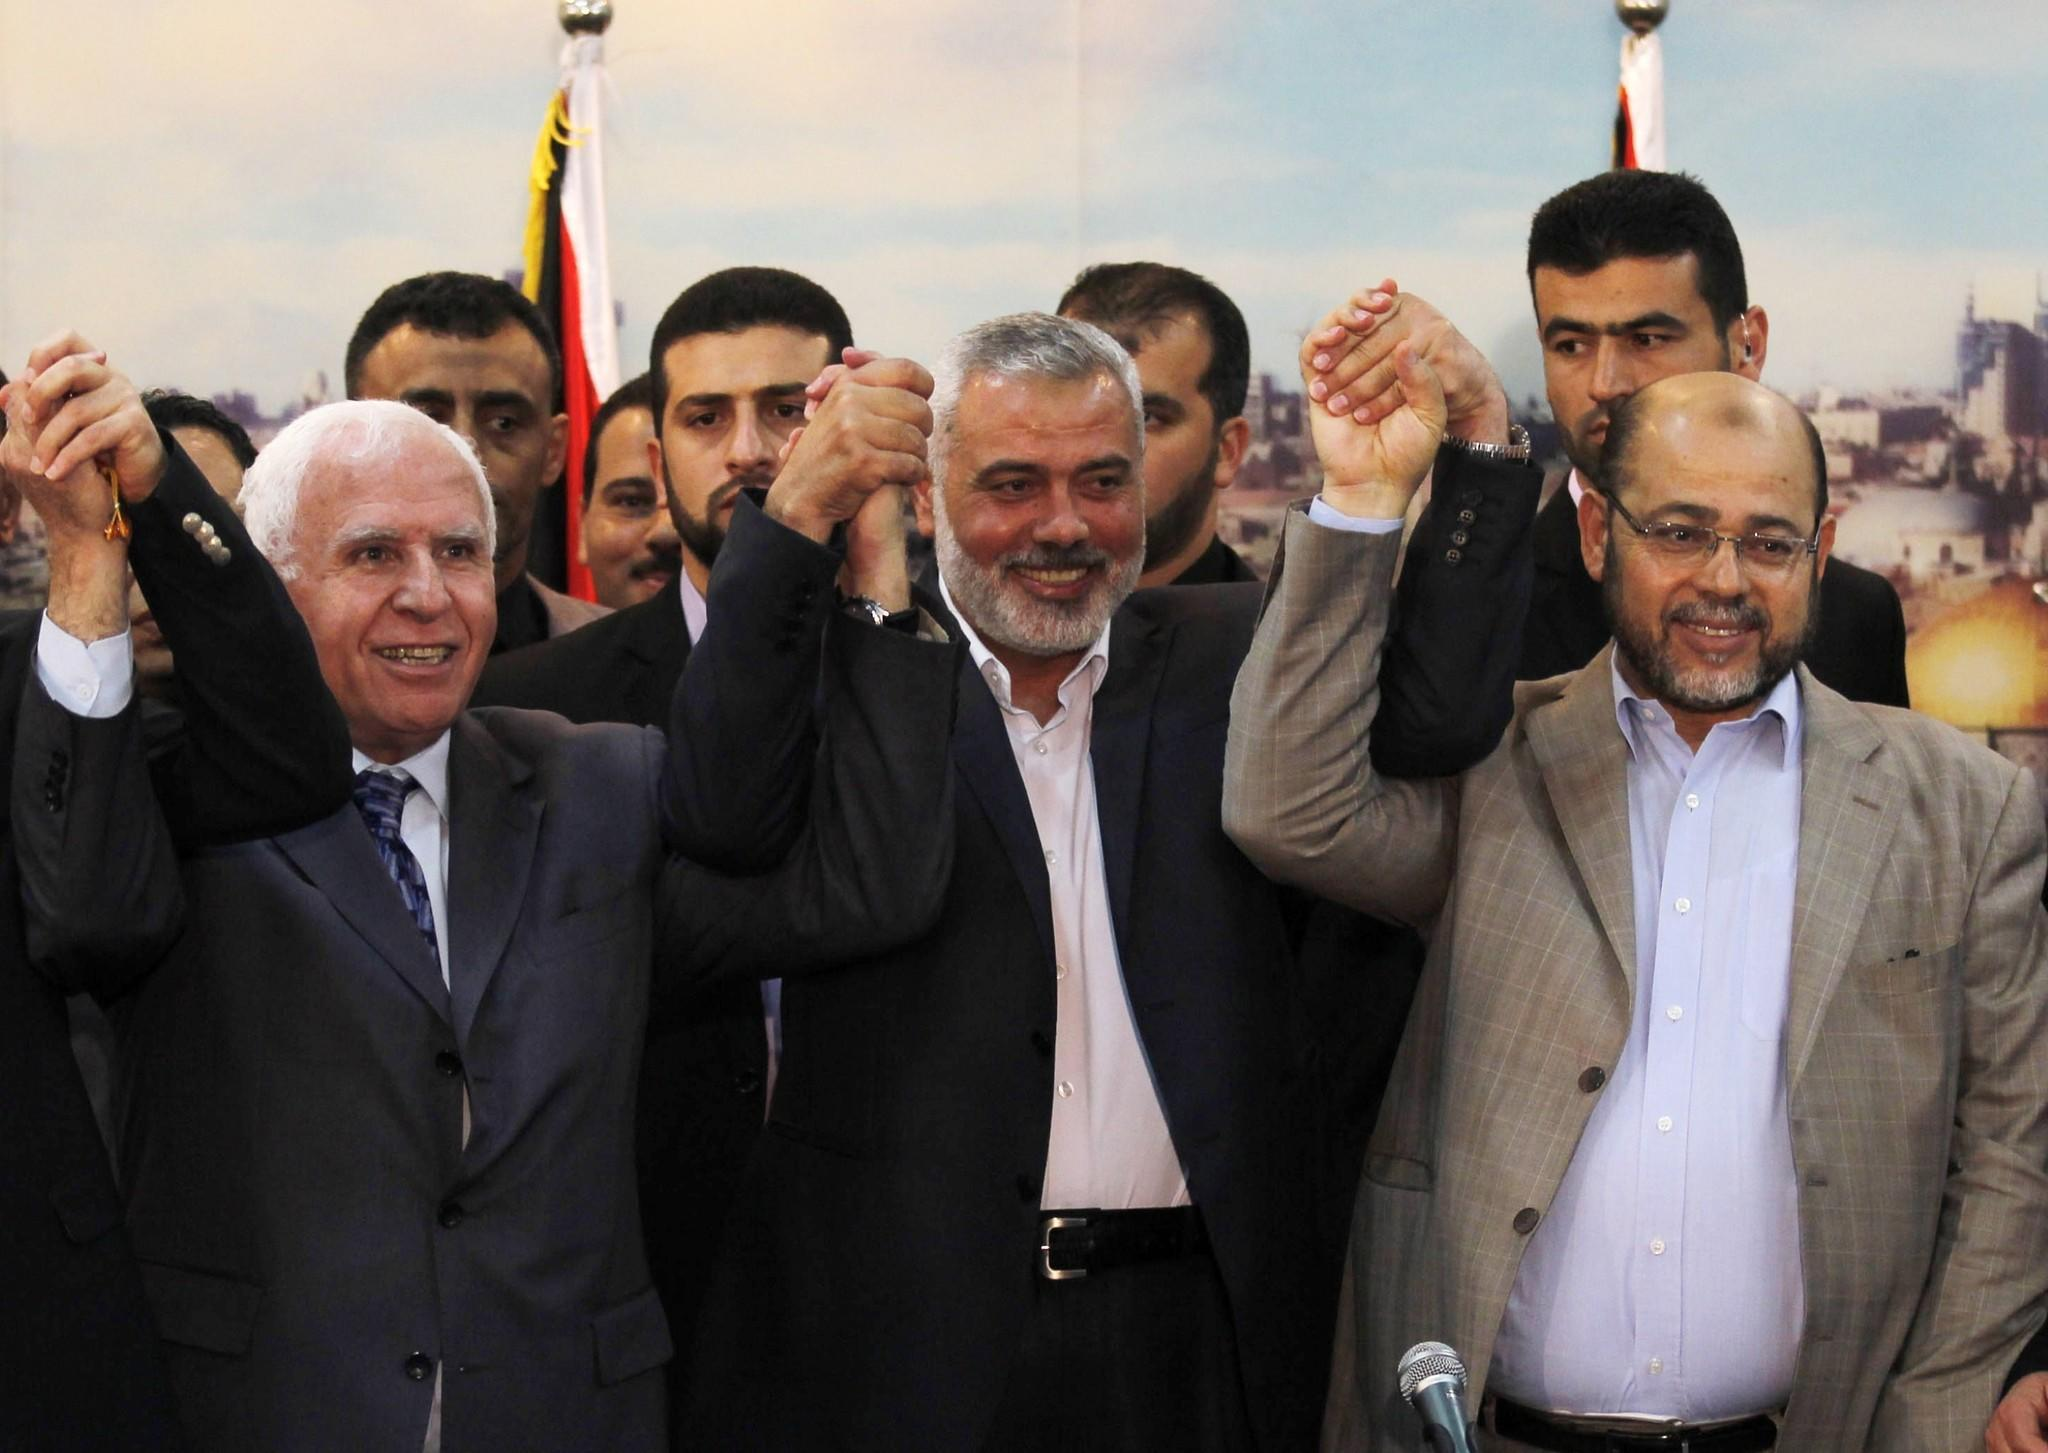 Palestinian Fatah delegation chief Azzam Ahmed, left, Hamas Prime Minister in the Gaza Strip Ismail Haniya and Hamas deputy leader Musa abu Marzuk pose for a photo as they celebrate the Palestinian unity accord Wednesday in Gaza City.